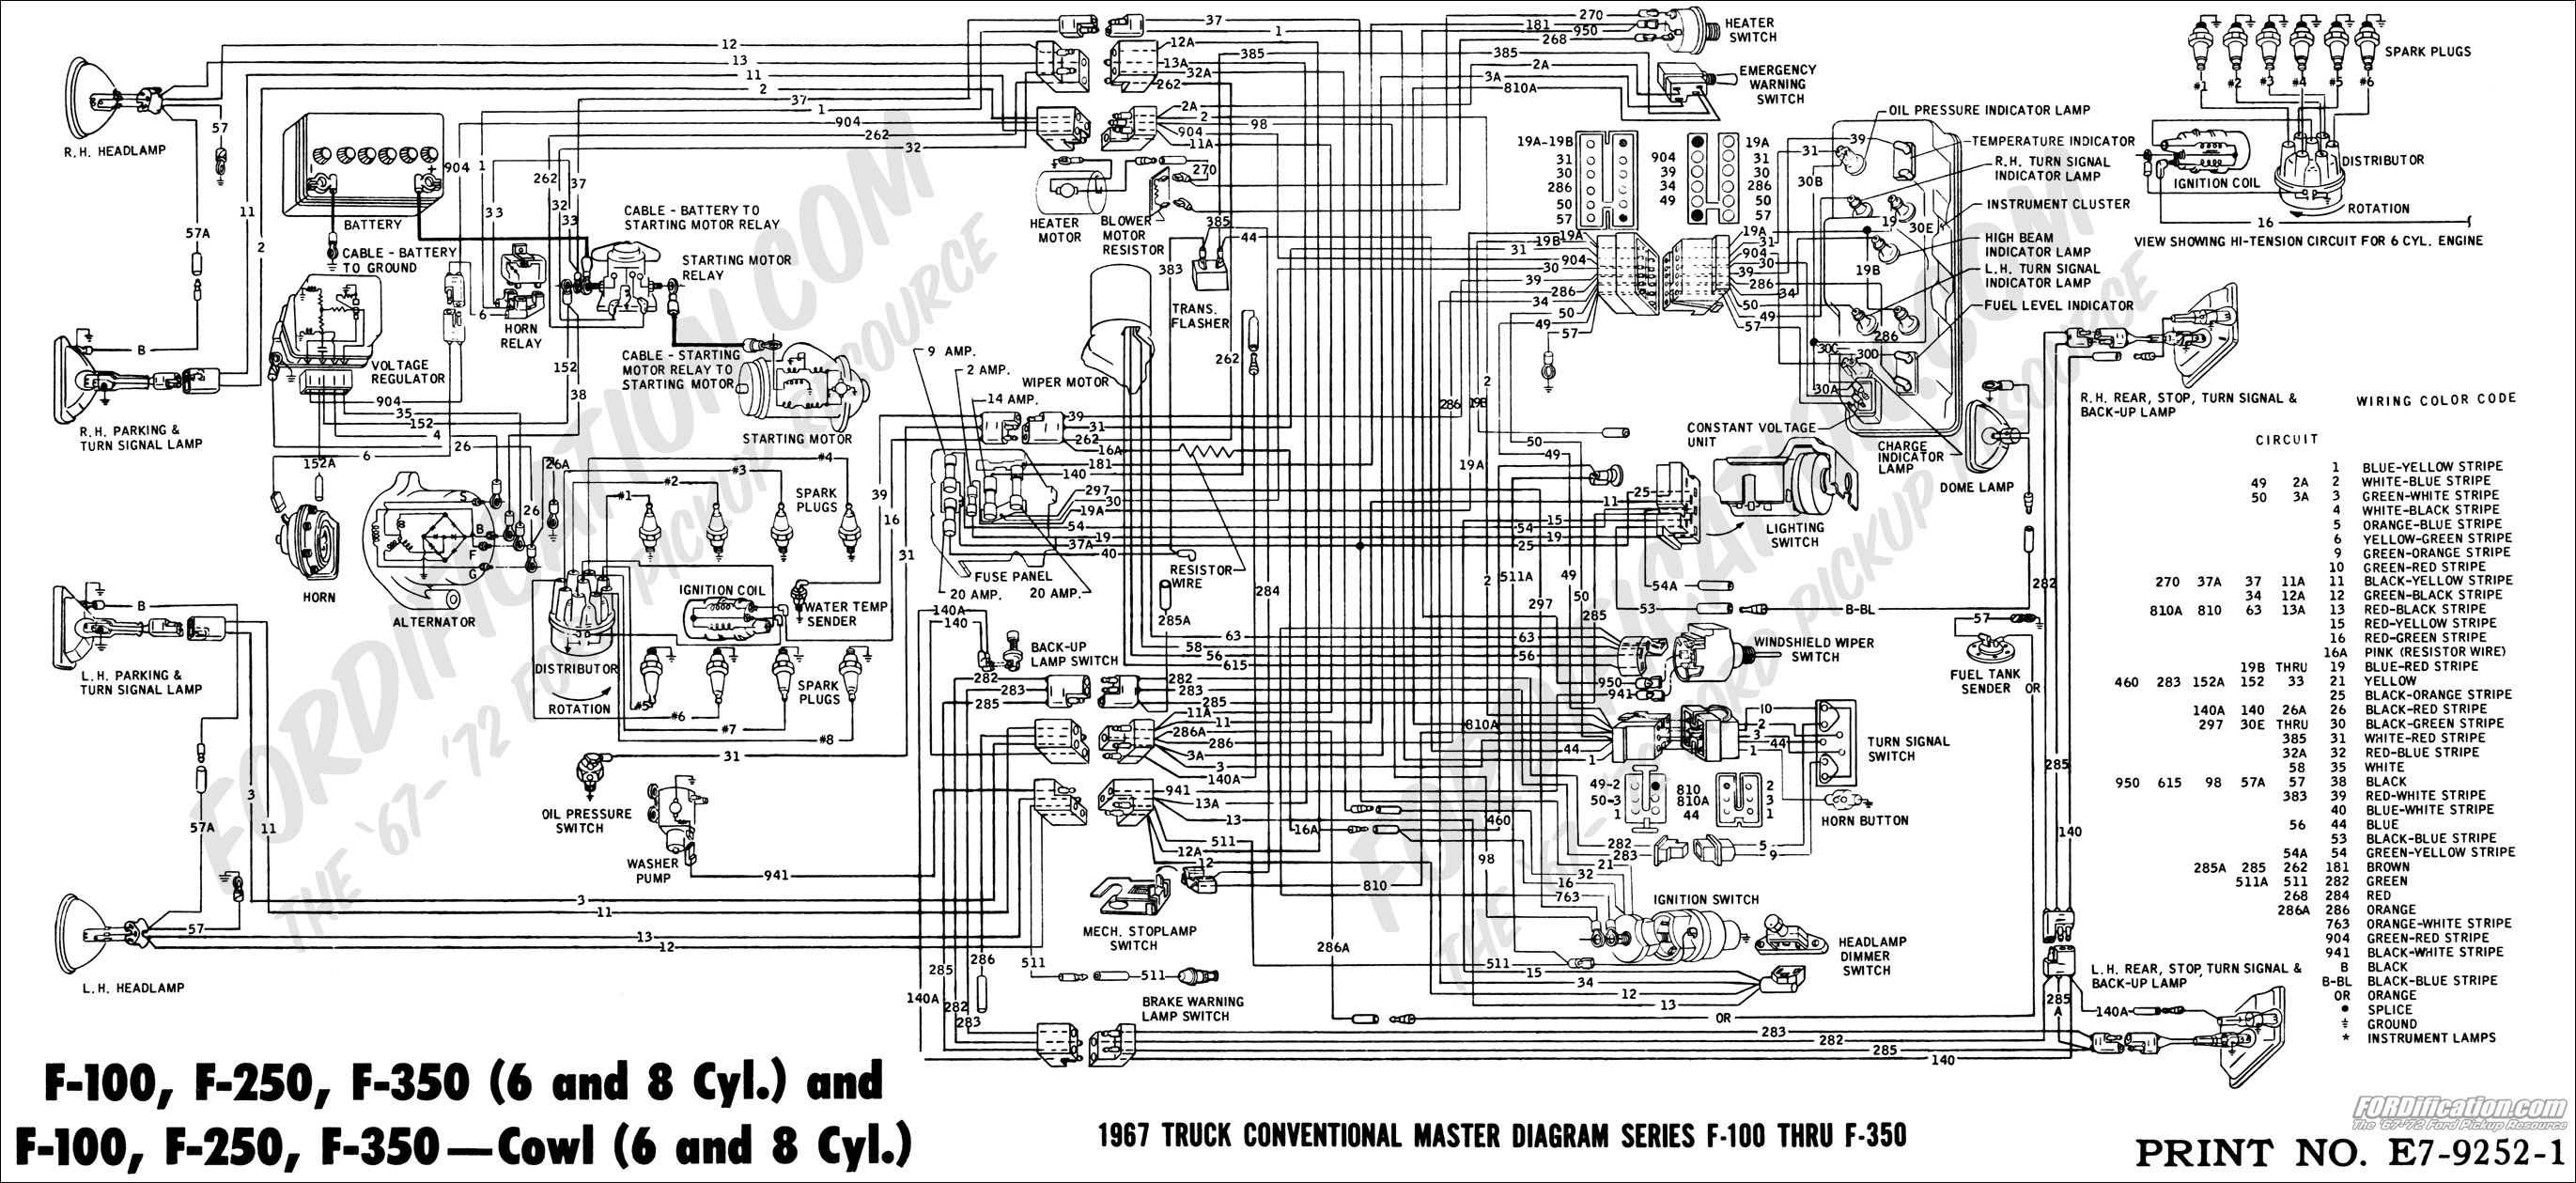 1999 Ford F250 Wiring Schematic Schematics Diagrams Snow Plow Diagram Electrical Detailed Rh Lelandlutheran Com